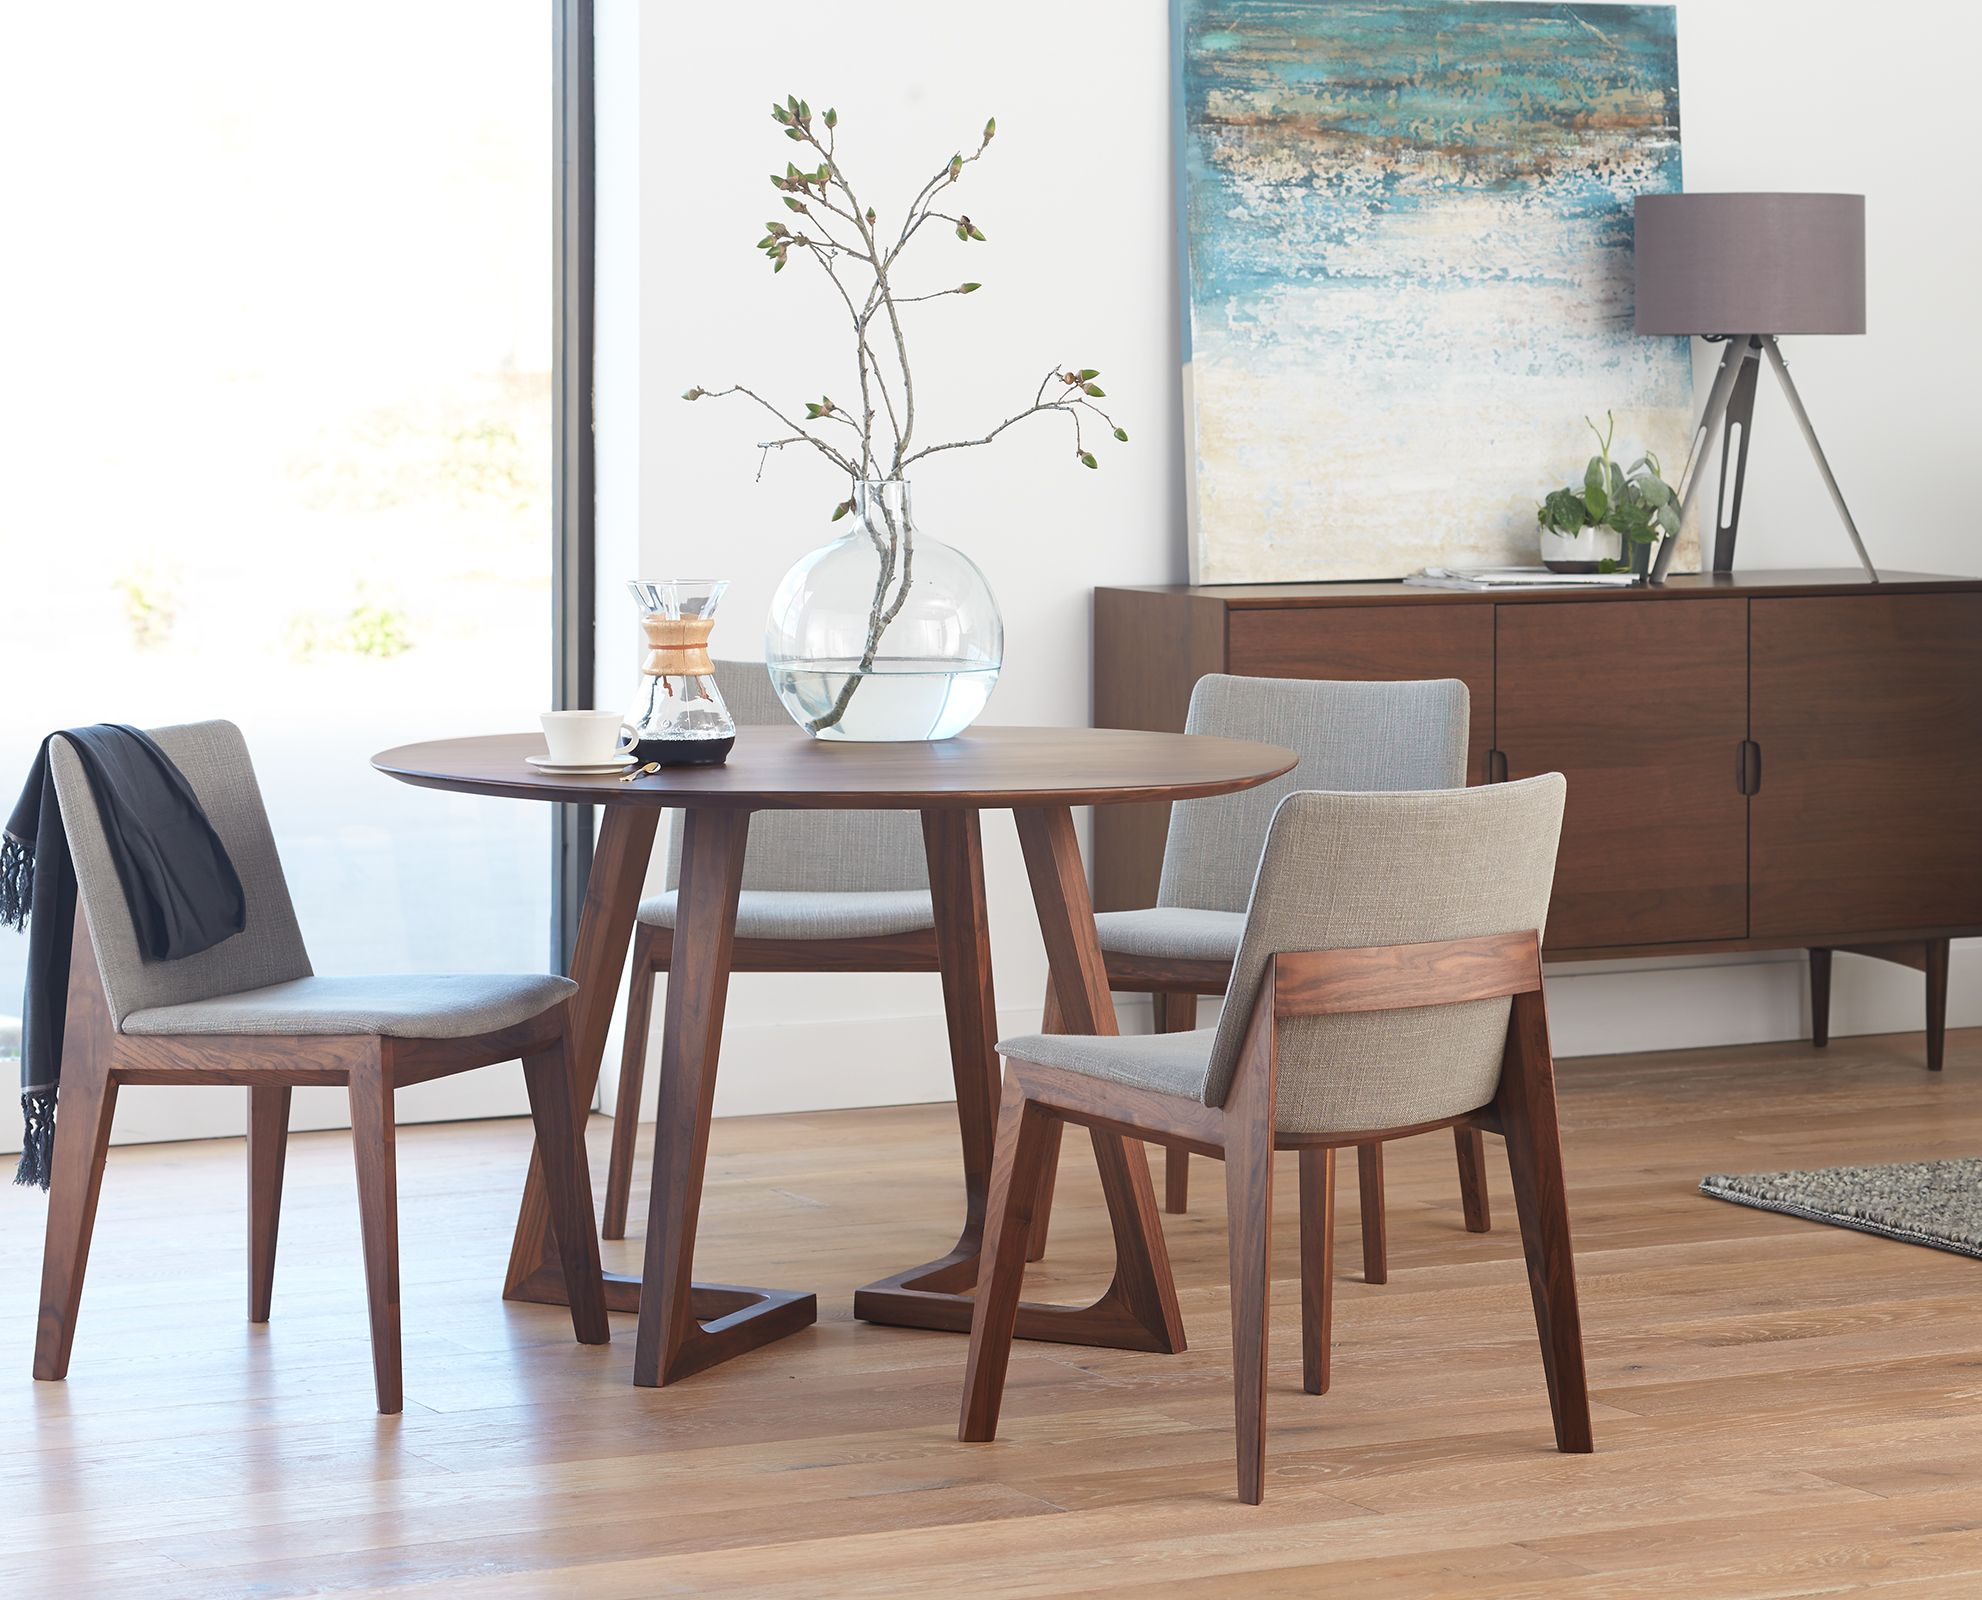 Round table and chairs from dania condo pinterest rounding dining chairs and dining - Modern design dining table ...